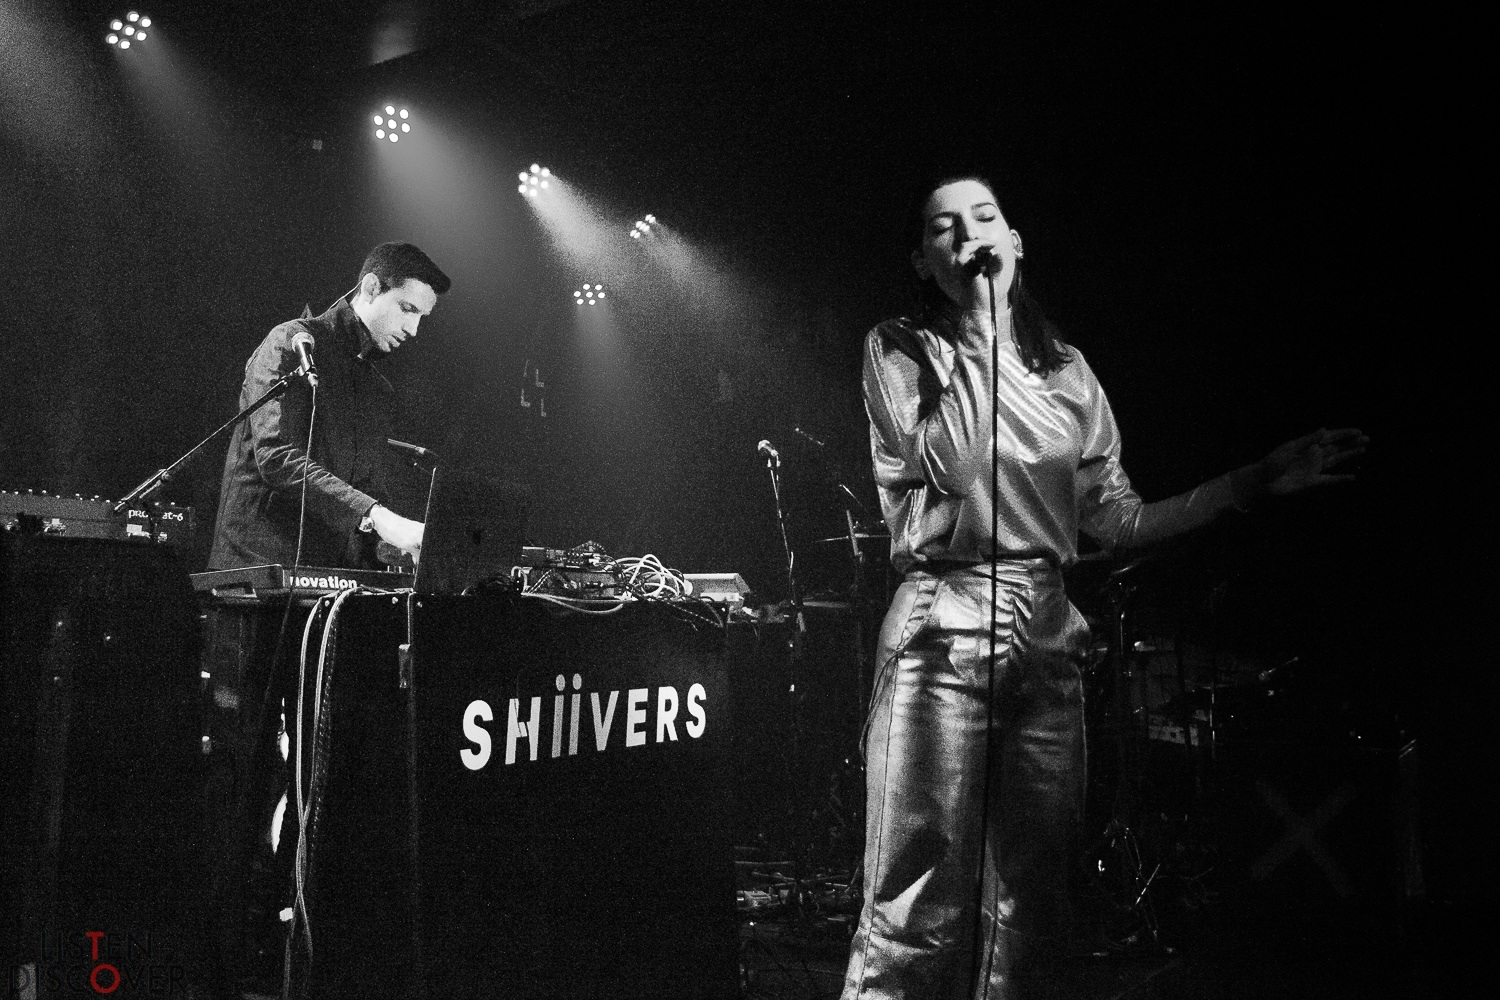 Shiivers at The Lexington - 6th September 2019